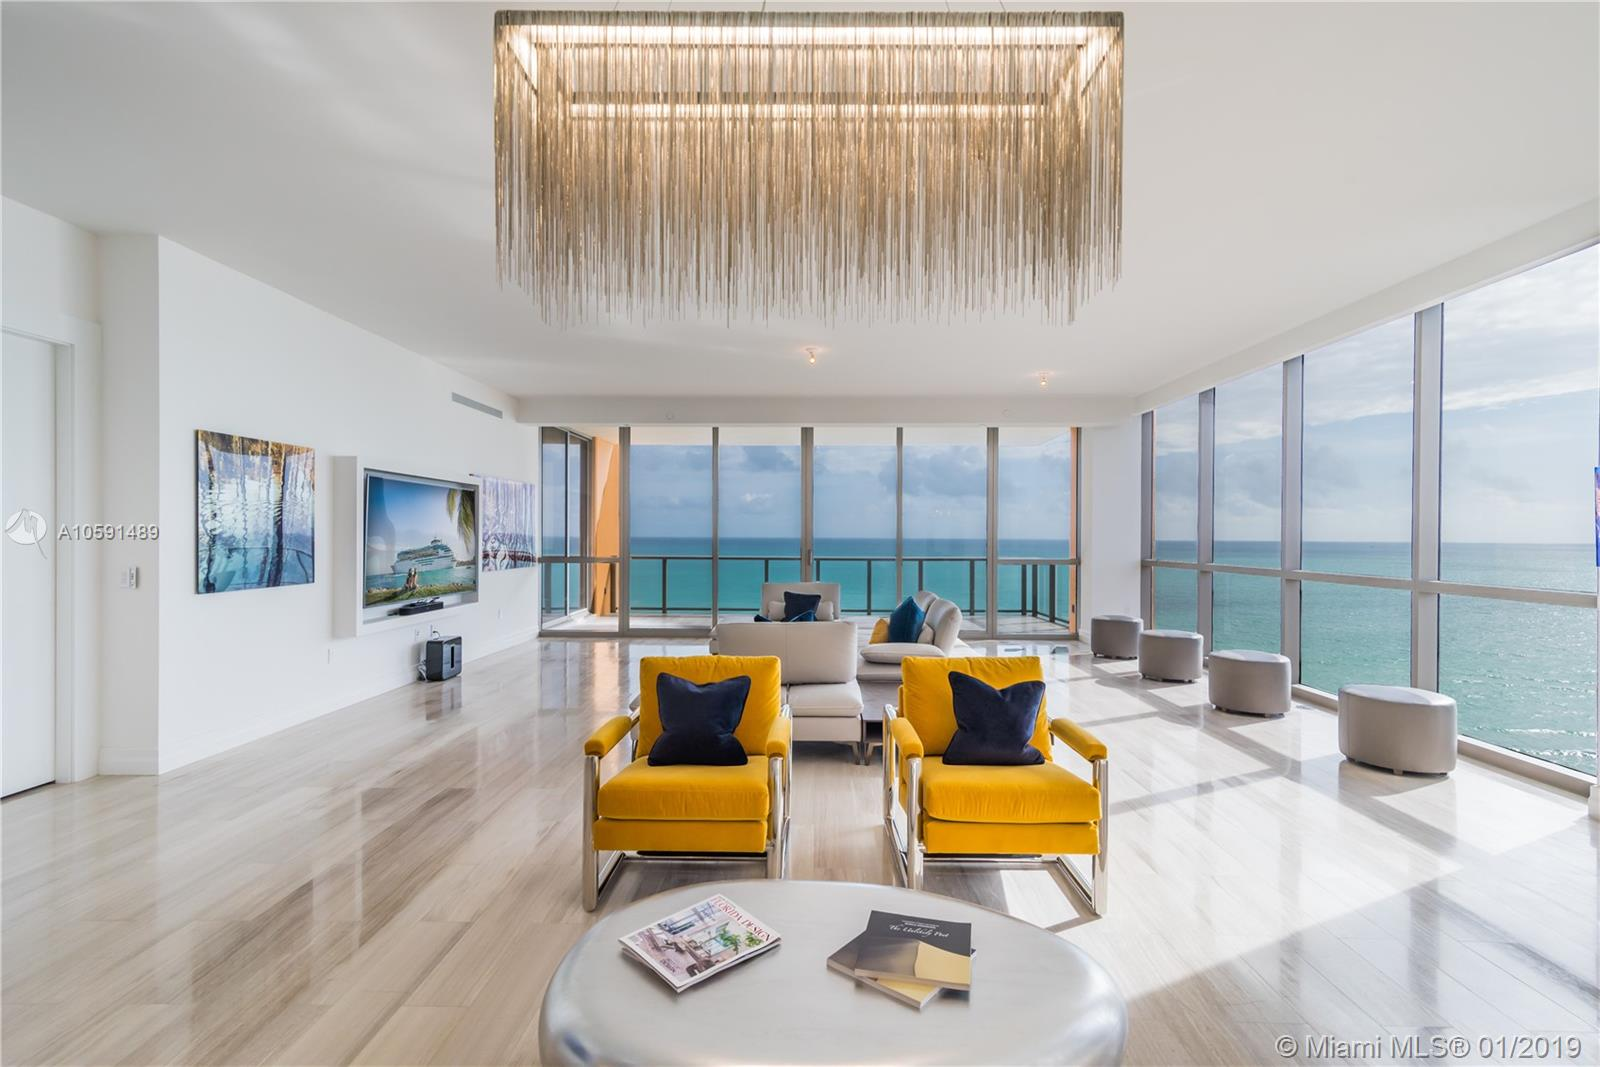 17749 Collins Ave #1002 Property Photo